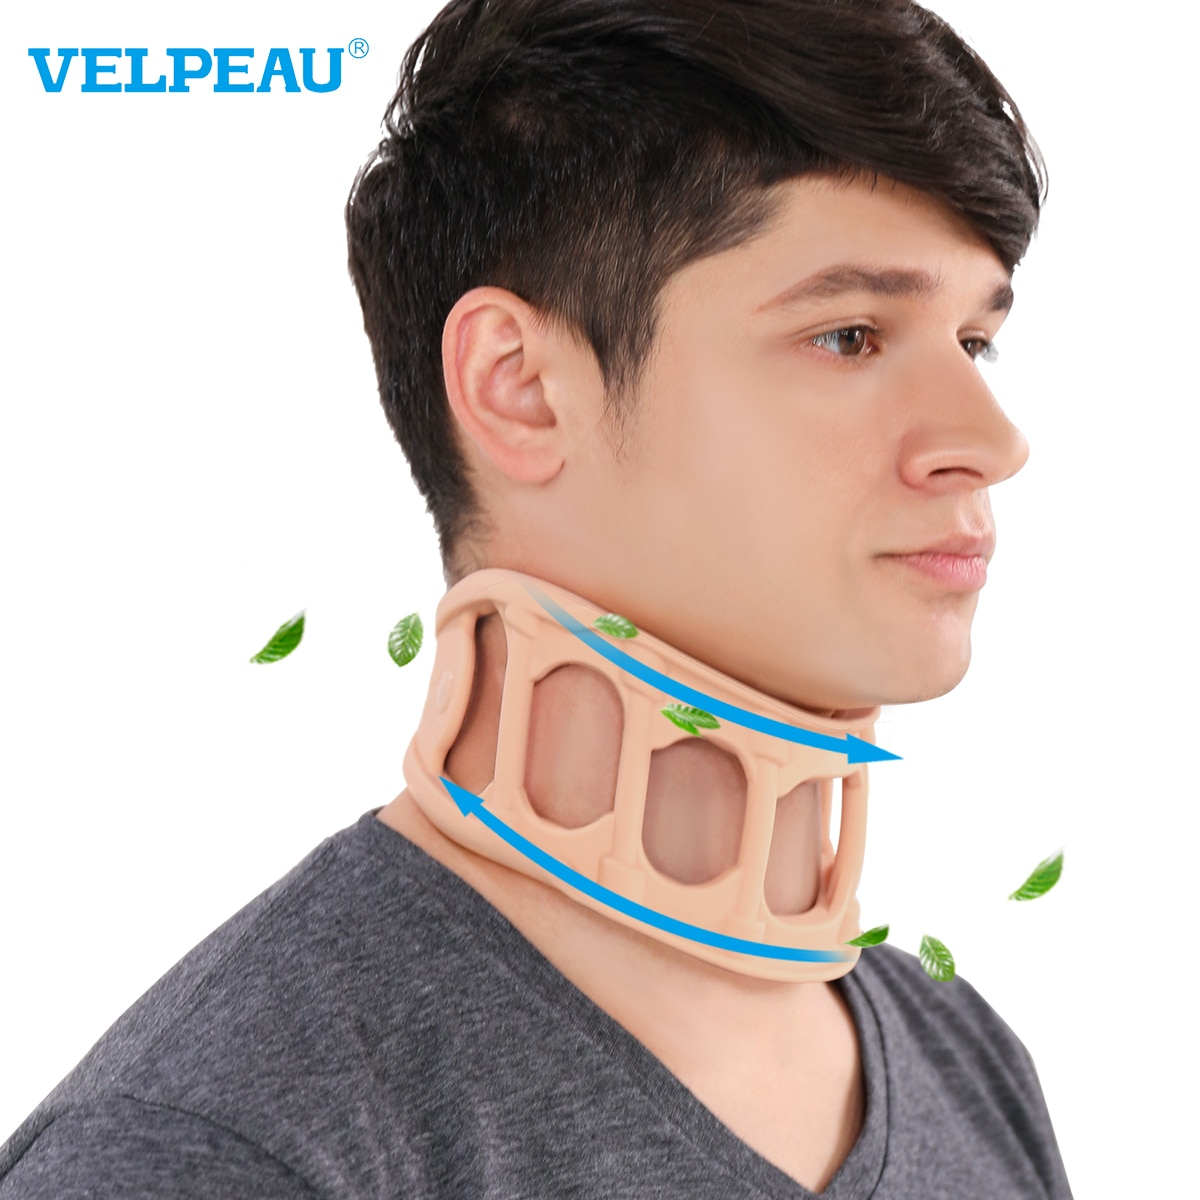 VELPEAU Neck Brace for Cervical Spine Pain Cool and Breathable Silicone Collar for Summer Neck Suppo